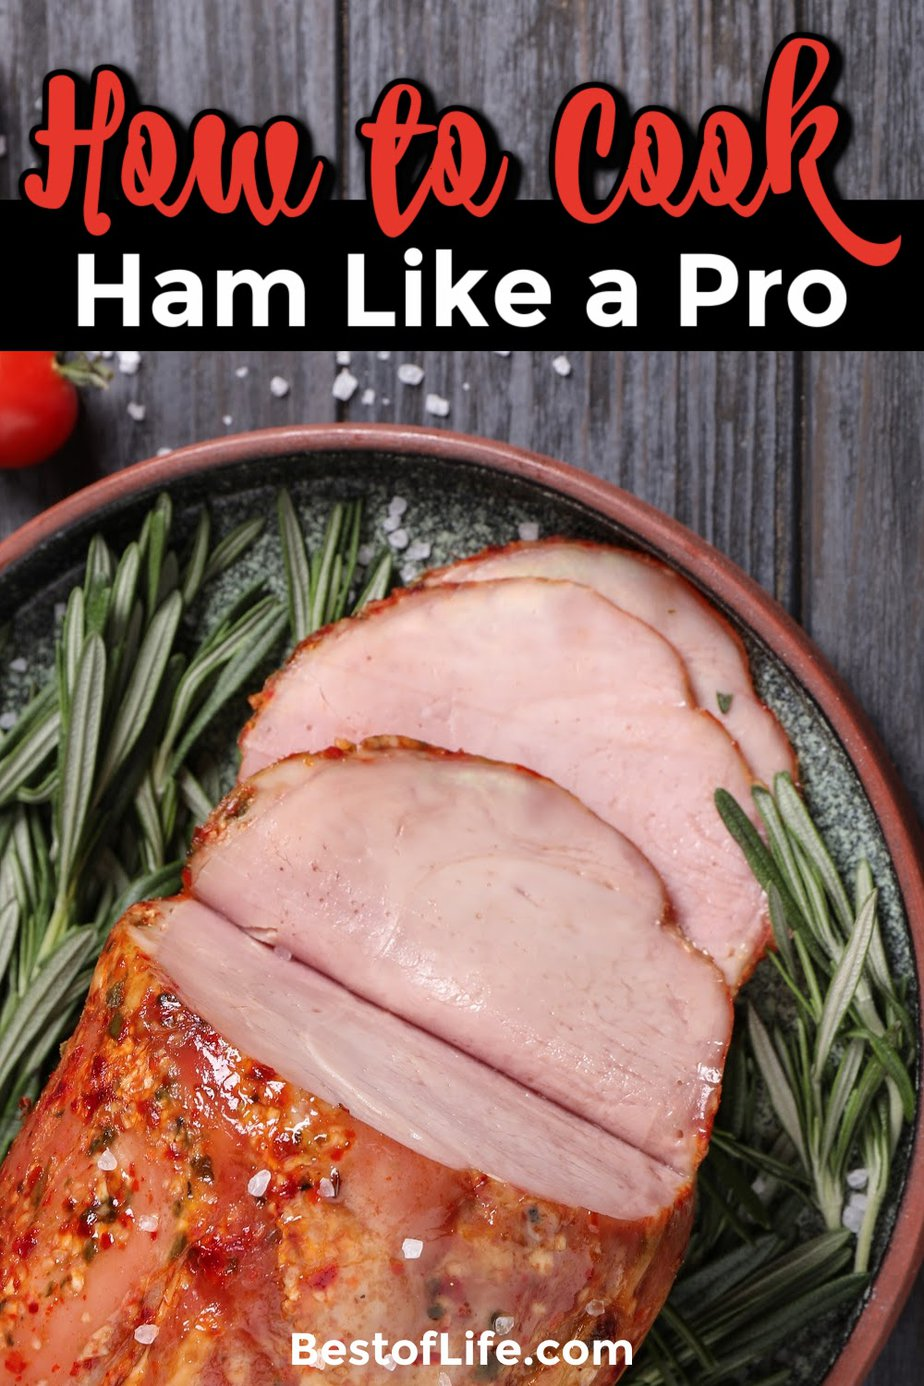 When you know how to cook a ham like a pro, the holiday season is less stressful, more delicious and impresses every guest. Ways to Cook Ham | Holiday Cooking Ideas | Thanksgiving Cooking Tips | Christmas Recipes | Holiday Recipes | Entertaining | Ham Cooking Tips | Ham Recipes | Holiday Ham Ideas | Holiday Meal Recipes | Family Recipes #cookingtips #holidayrecipes via @thebestoflife